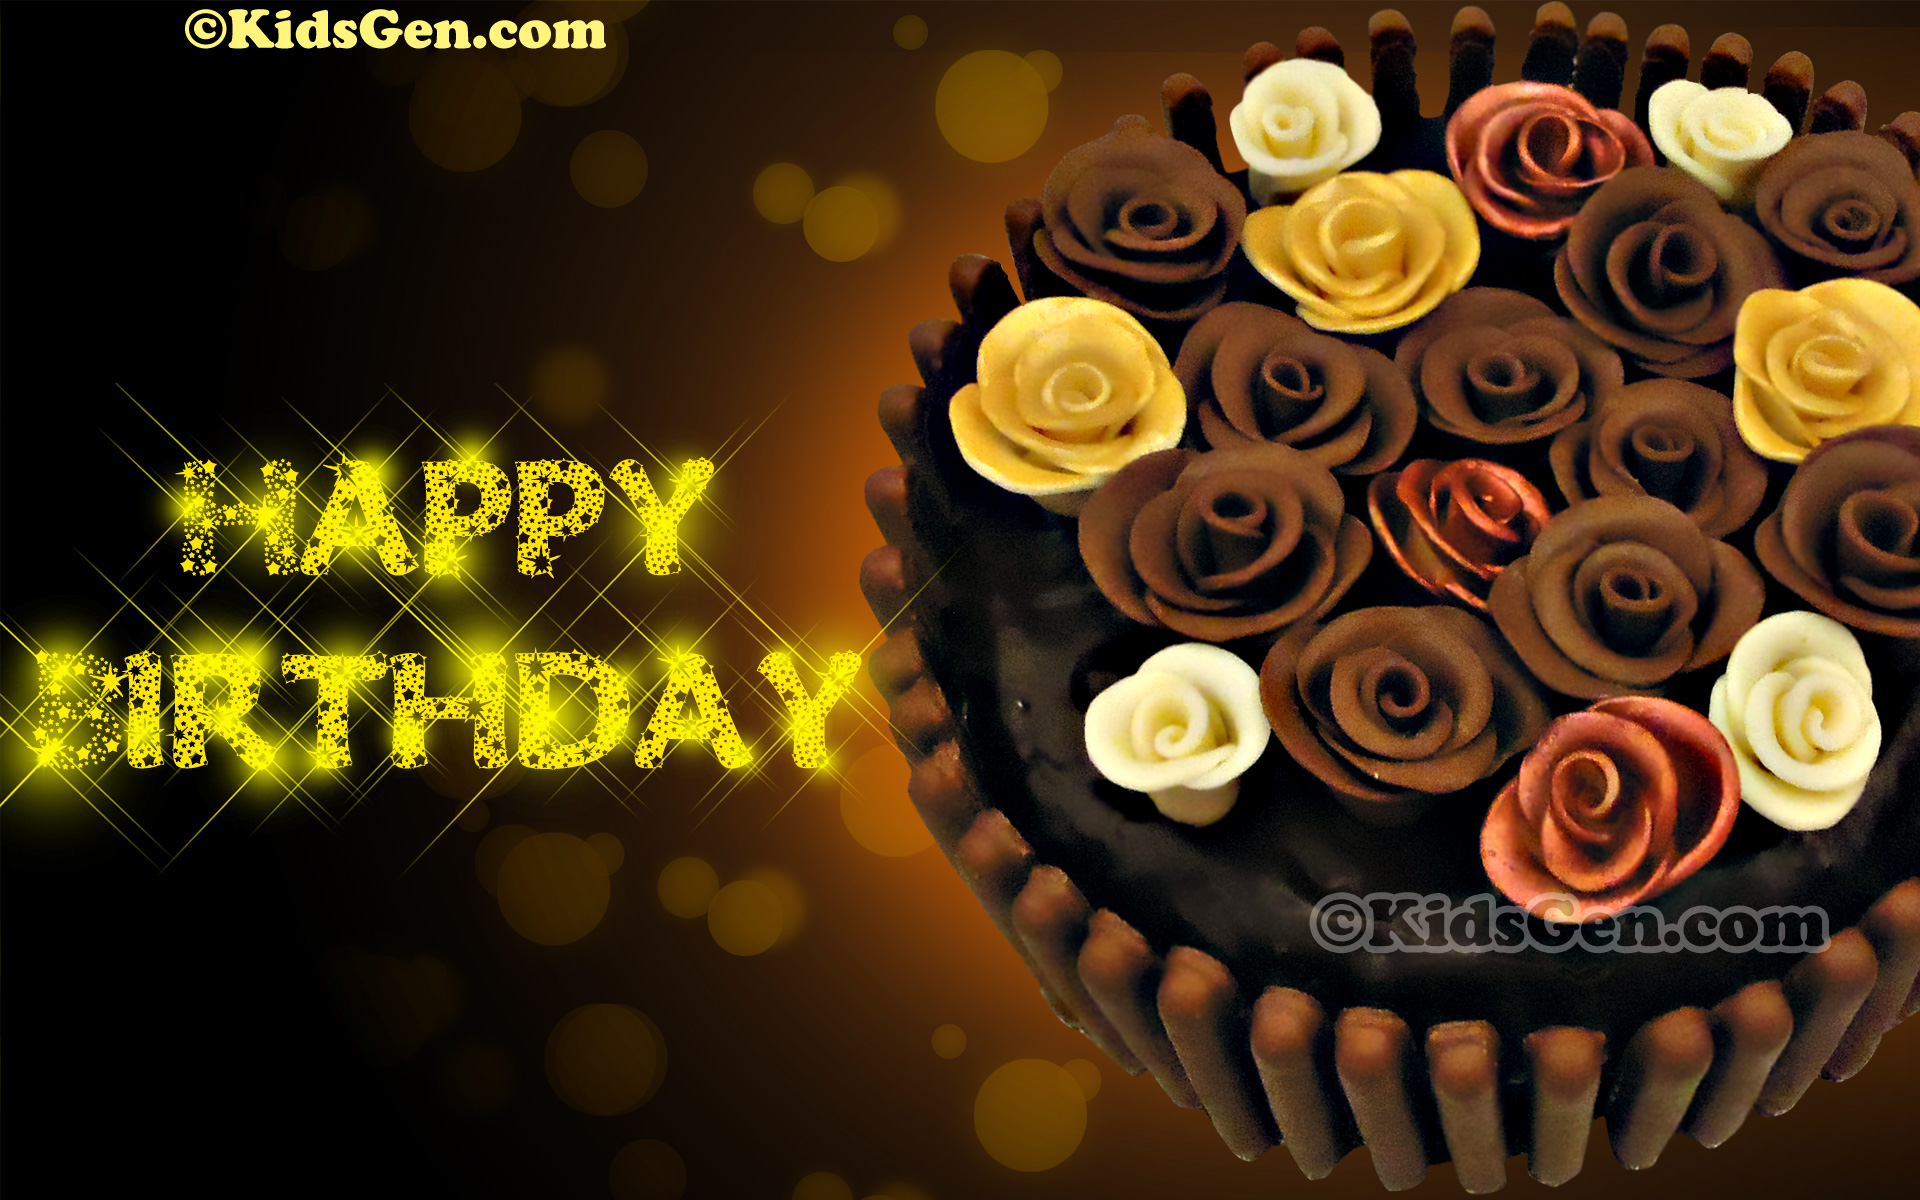 Birthday Cake Wallpapers Bhstorm Wallpaper For Download Free HD Celebration